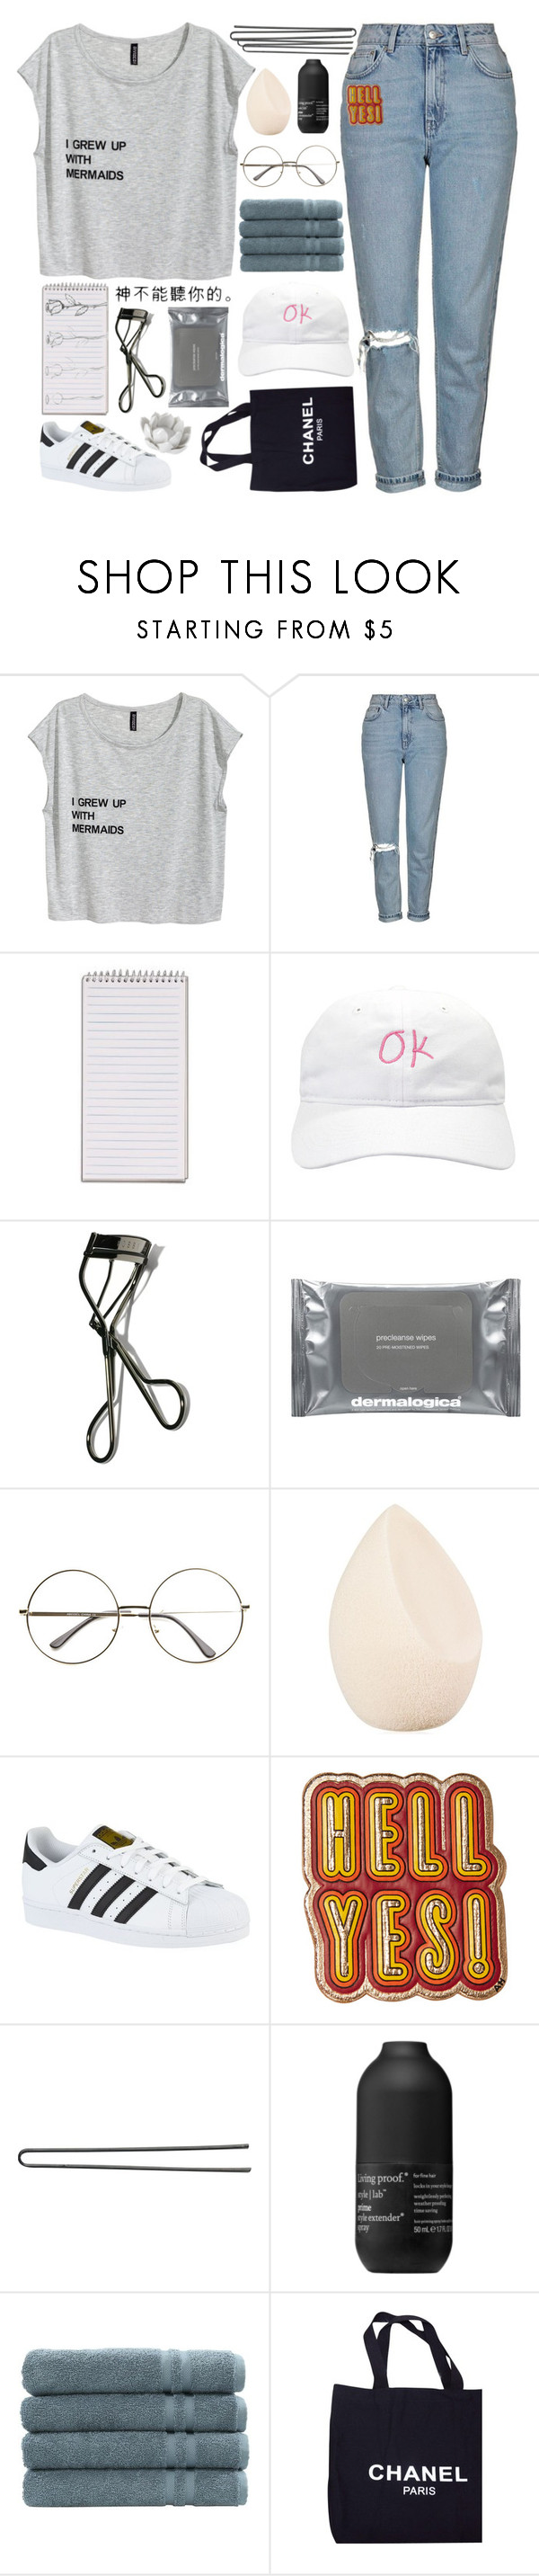 """""""The words you know are out of ink"""" by yonderlyx ❤ liked on Polyvore featuring Topshop, Bobbi Brown Cosmetics, Dermalogica, Christian Dior, adidas, Anya Hindmarch, Hershesons, Living Proof, Linum Home Textiles and Chanel"""